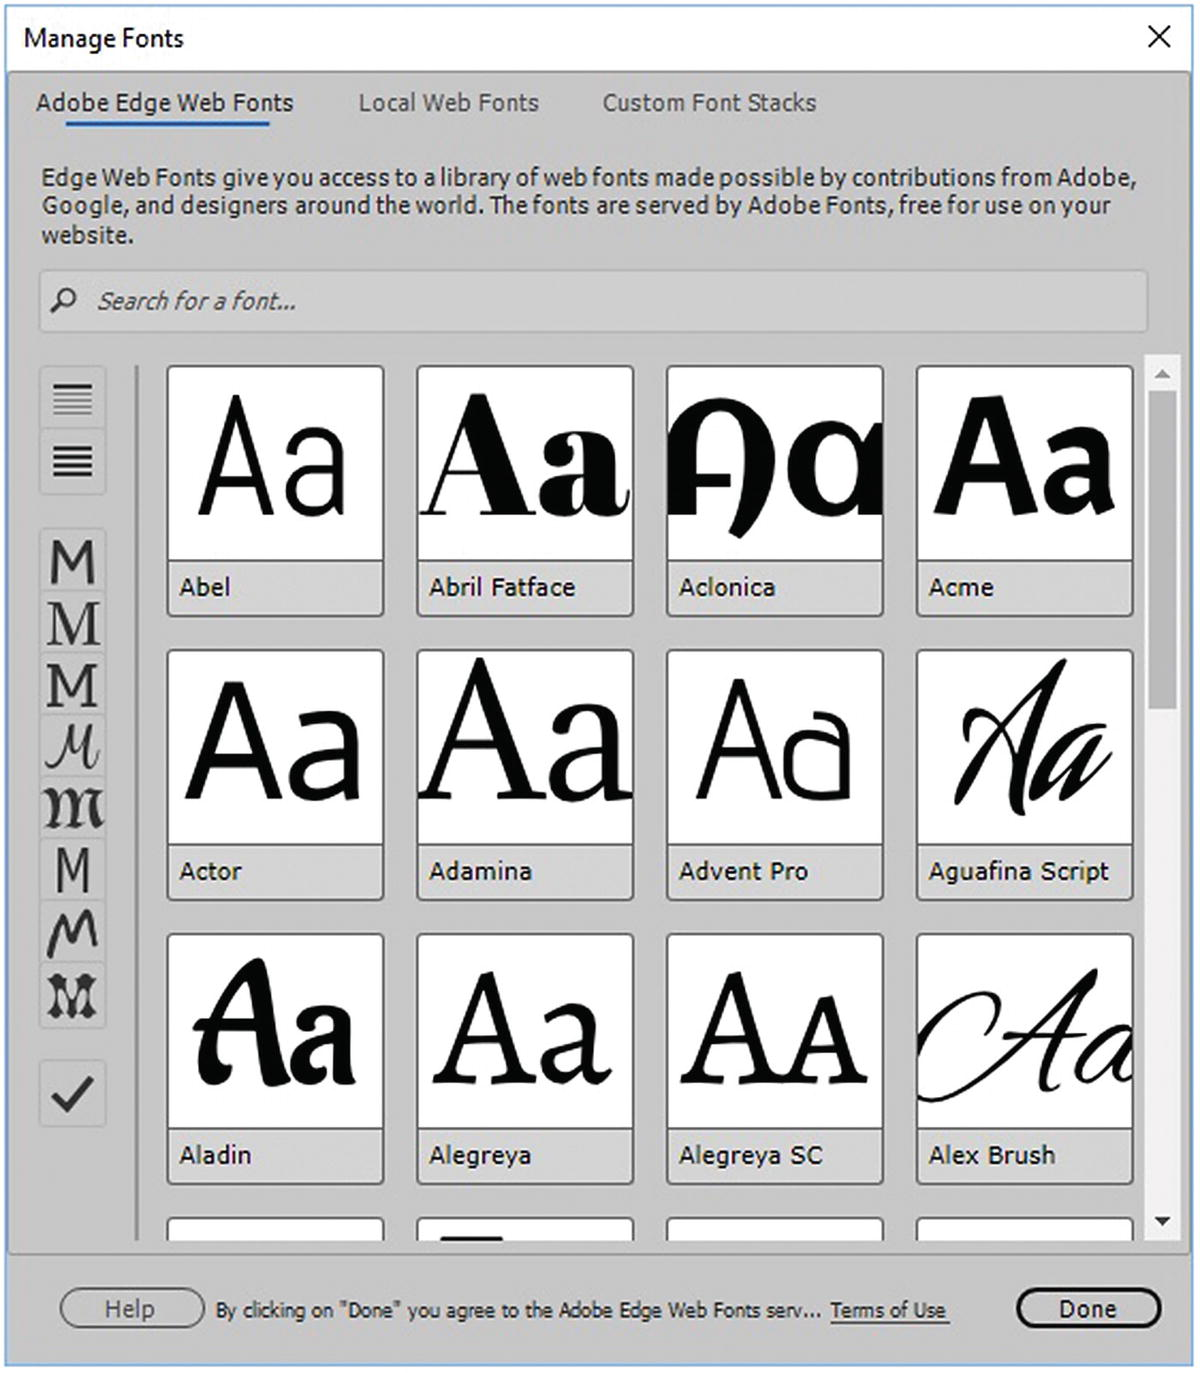 Additional Options to Apply Images in Dreamweaver | SpringerLink